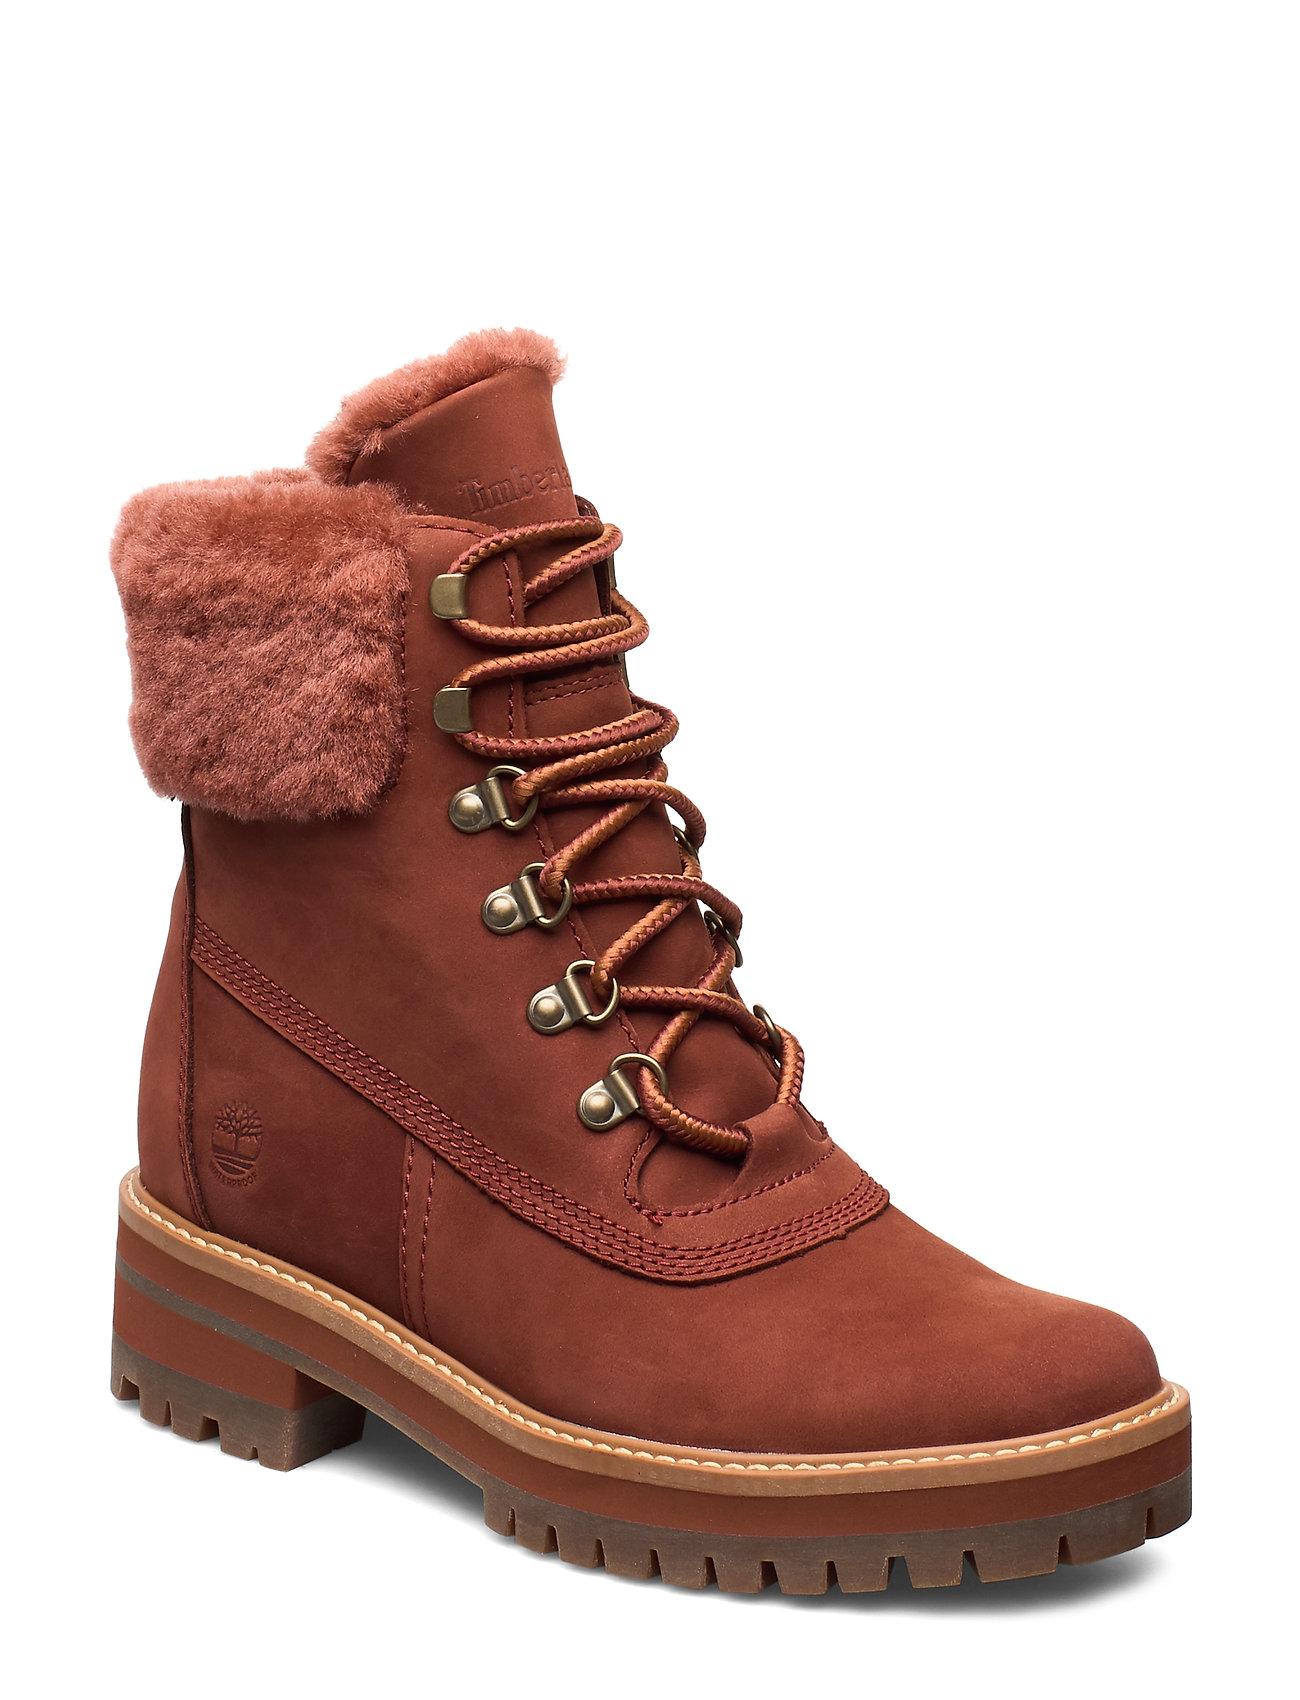 Image of Courmayeur Valley Wp 6in Shoes Boots Ankle Boots Ankle Boot - Flat Brun Timberland (3406173805)